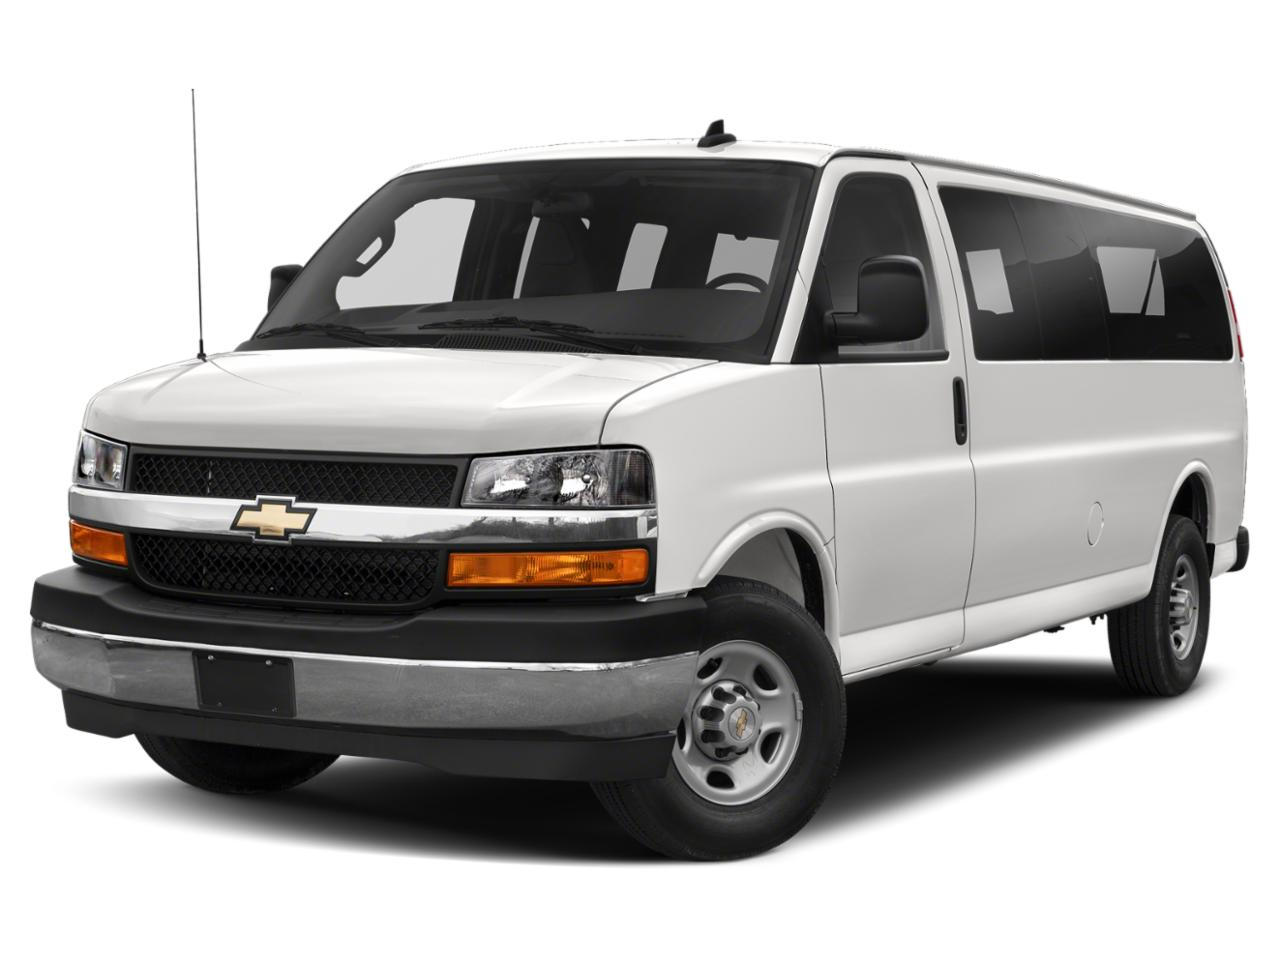 2021 Chevrolet Express Cargo Van Vehicle Photo in Brockton, MA 02301